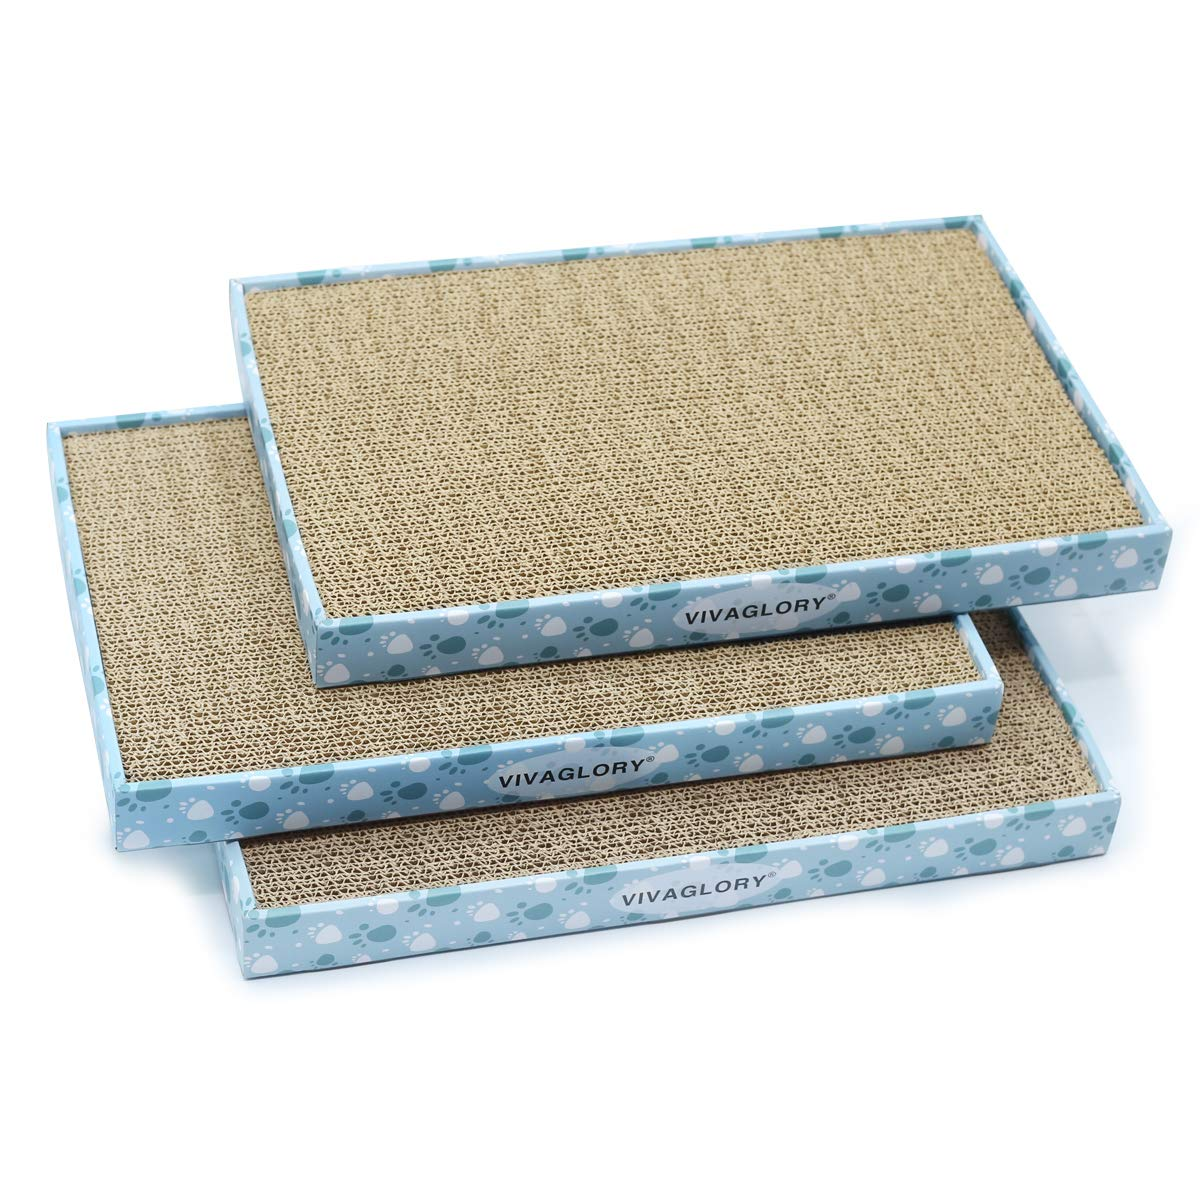 Vivaglory Cat Scratcher Extra Wide with Box of 3 Pack, Reversible Cat Scratching Pad Kitty Corrugated Cardboard Sofa Lounge, Catnip Included by Vivaglory